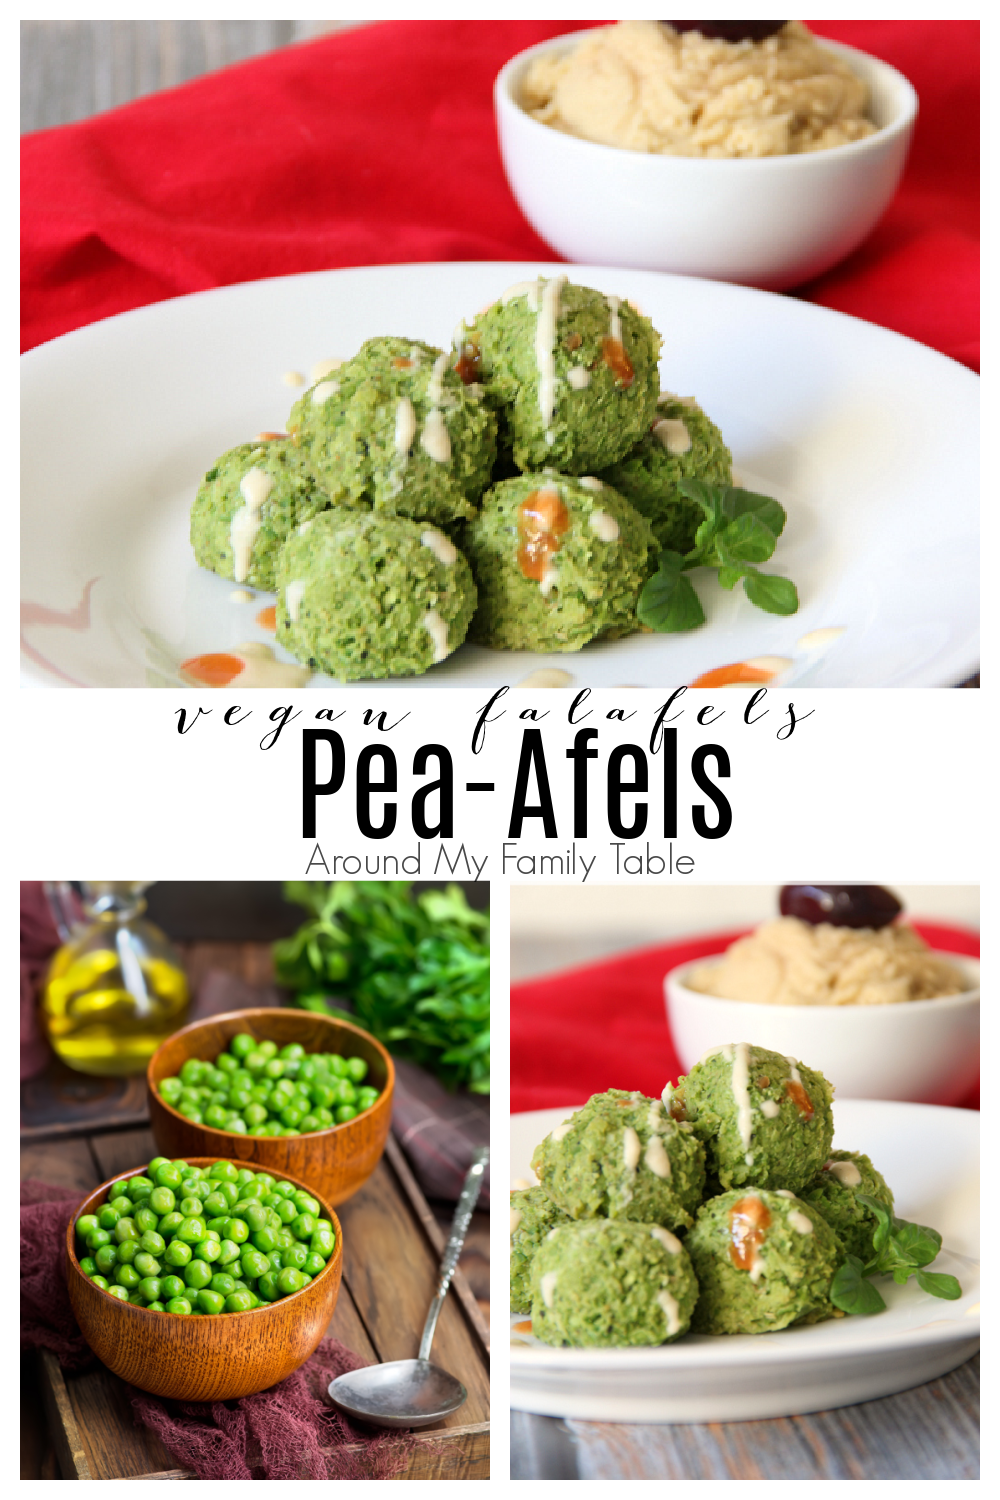 My Pea-Afel (vegan falafel) swaps peas for chickpeas in traditional falafels and it makes an addicting little appetizer bite that everyone will love! via @slingmama